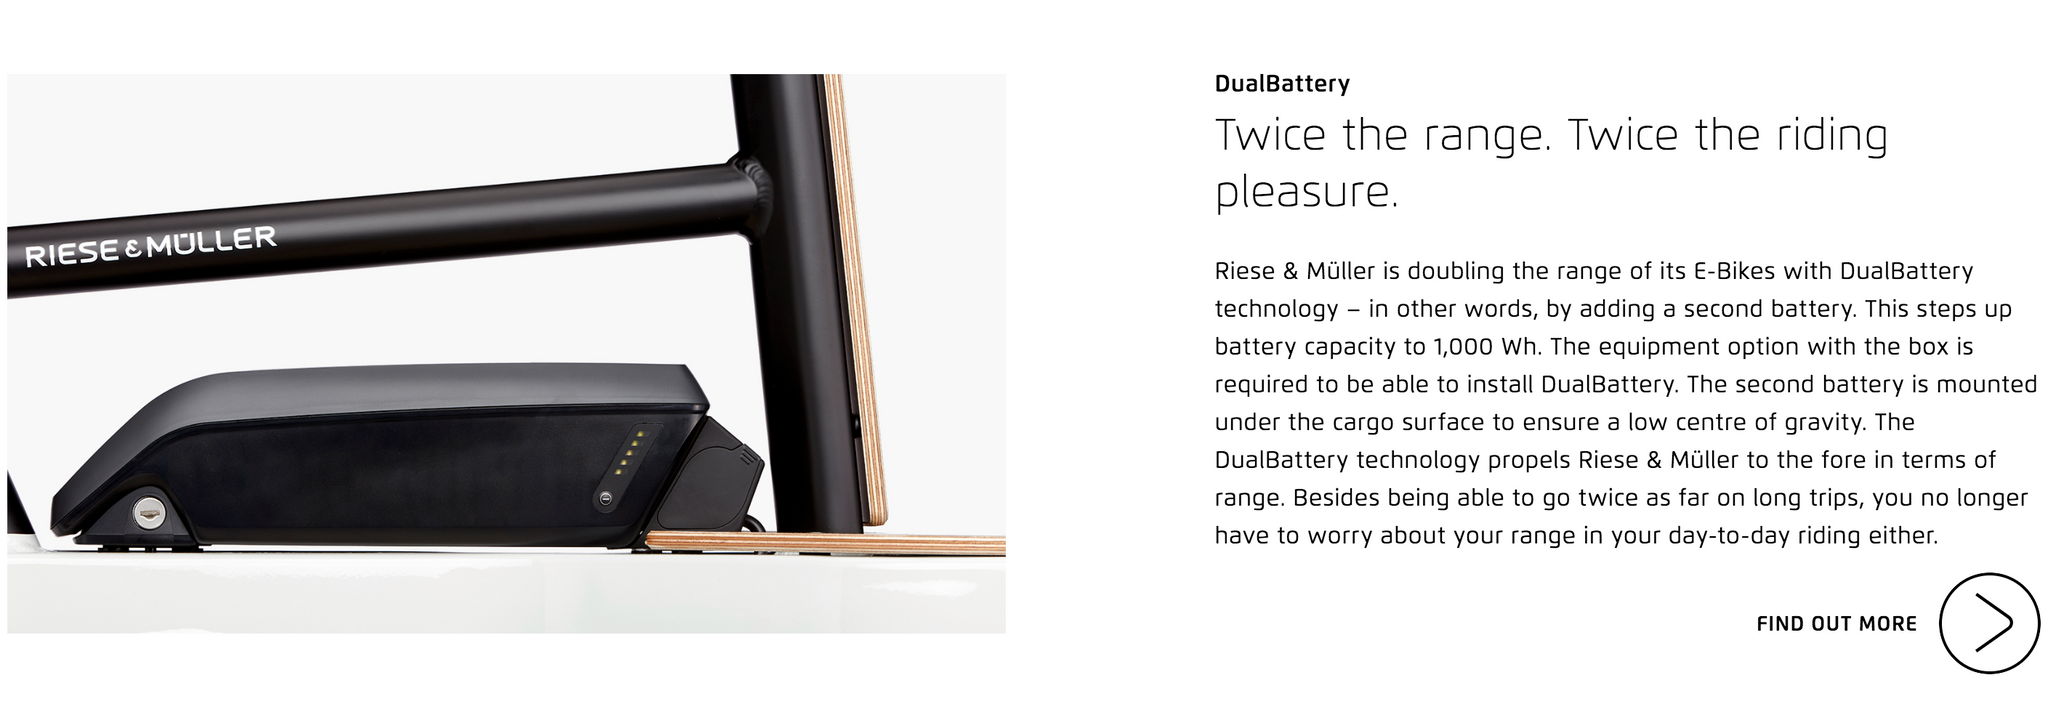 DualBattery  Twice the range. Twice the riding pleasure. Riese & Müller is doubling the range of its E-Bikes with DualBattery technology – in other words, by adding a second battery. This steps up battery capacity to 1,000 Wh. The equipment option with the box is required to be able to install DualBattery. The second battery is mounted under the cargo surface to ensure a low centre of gravity. The DualBattery technology propels Riese & Müller to the fore in terms of range. Besides being able to go twice as far on long trips, you no longer have to worry about your range in your day-to-day riding either.